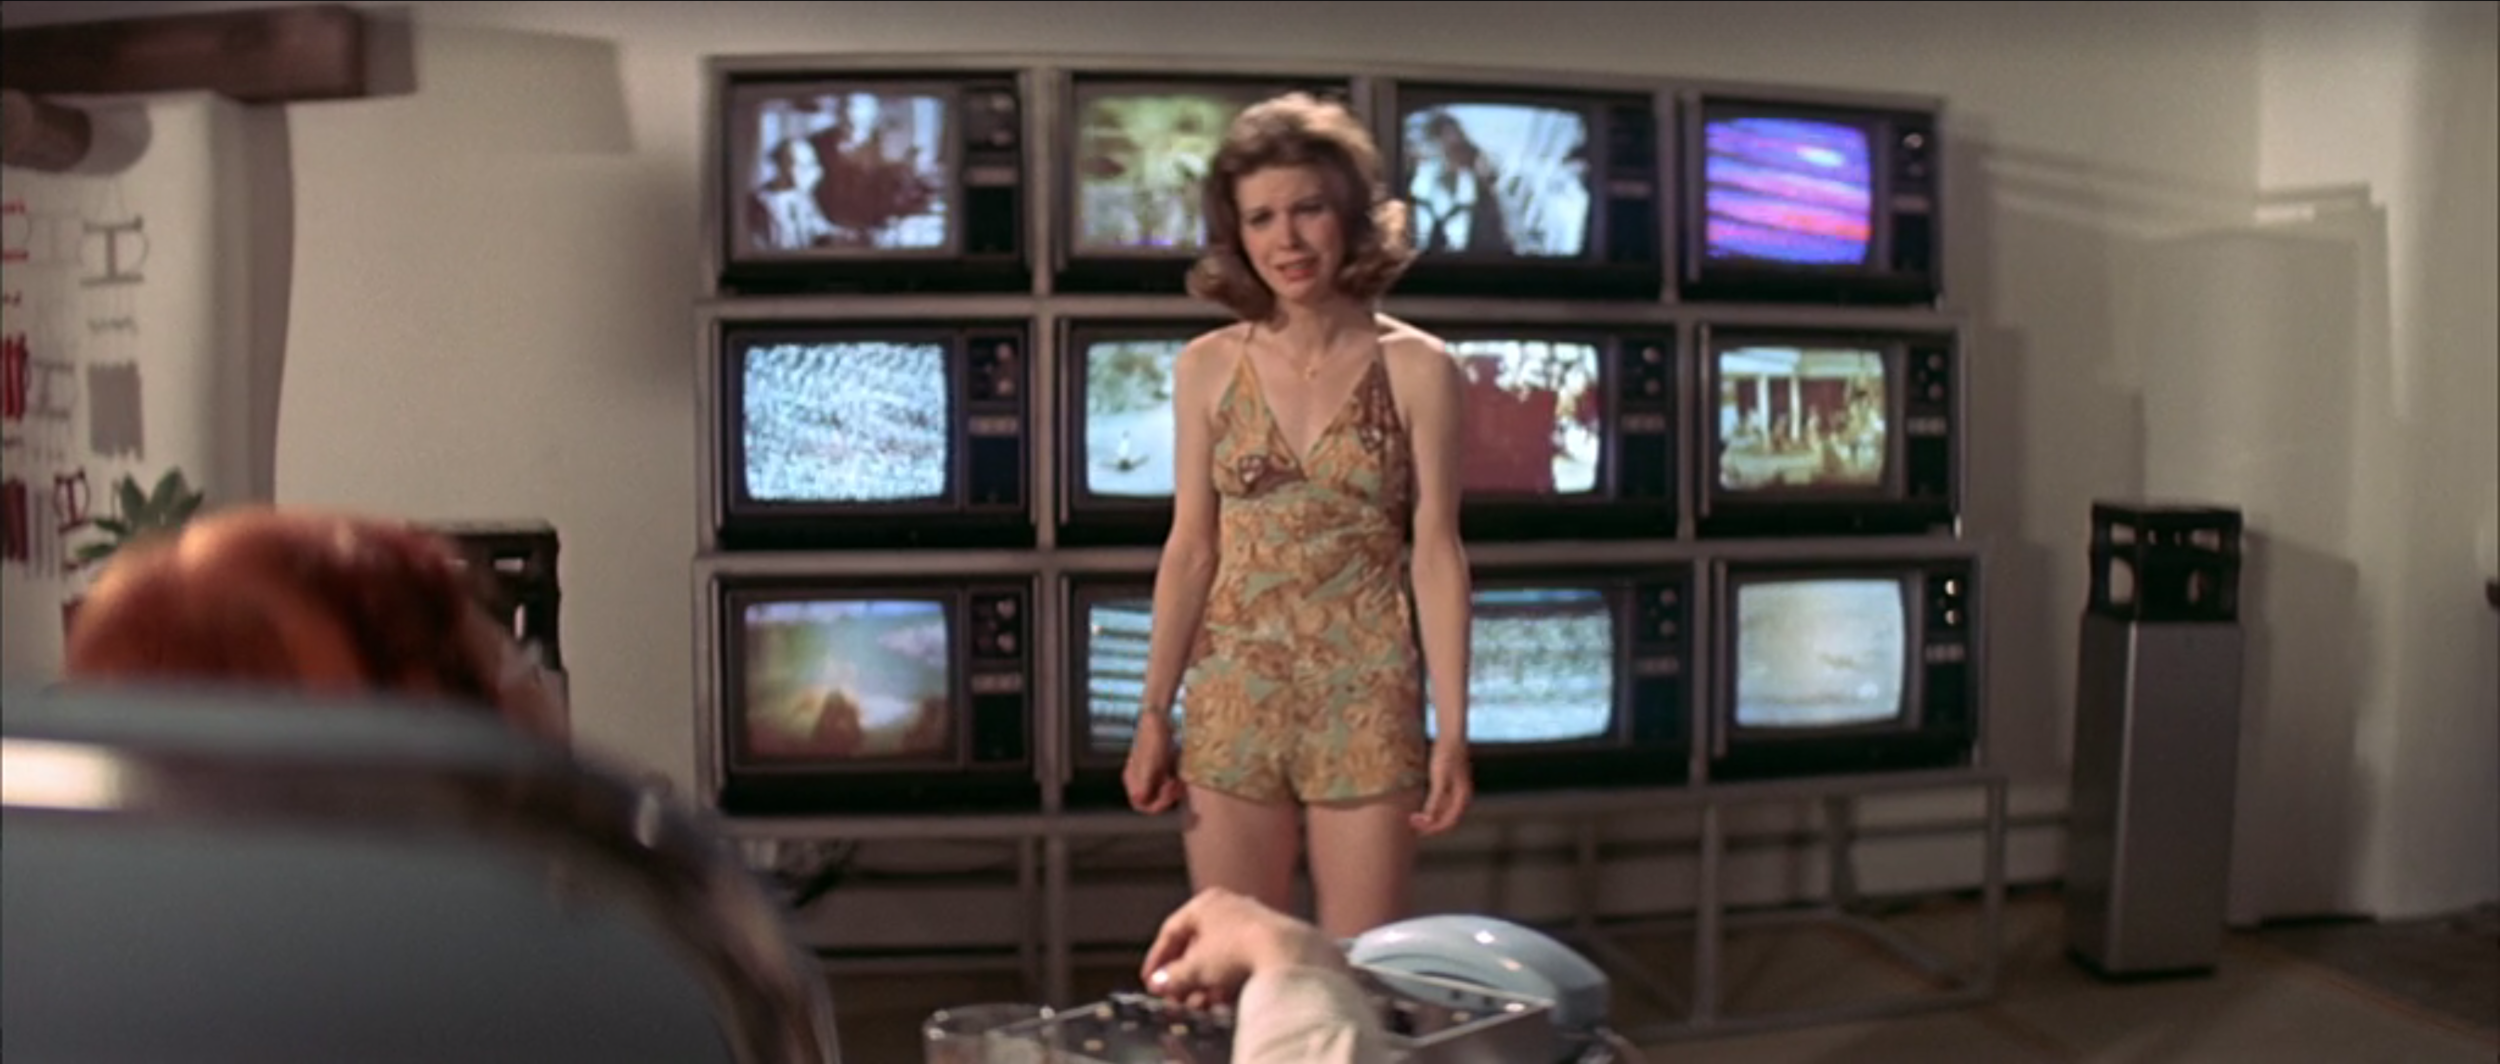 Candy Clark in  The Man Who Fell to Earth  (1976). Stacked televisions—here watched by David Bowie's character—quickly became an oft-used visual metaphor for overconsumption.